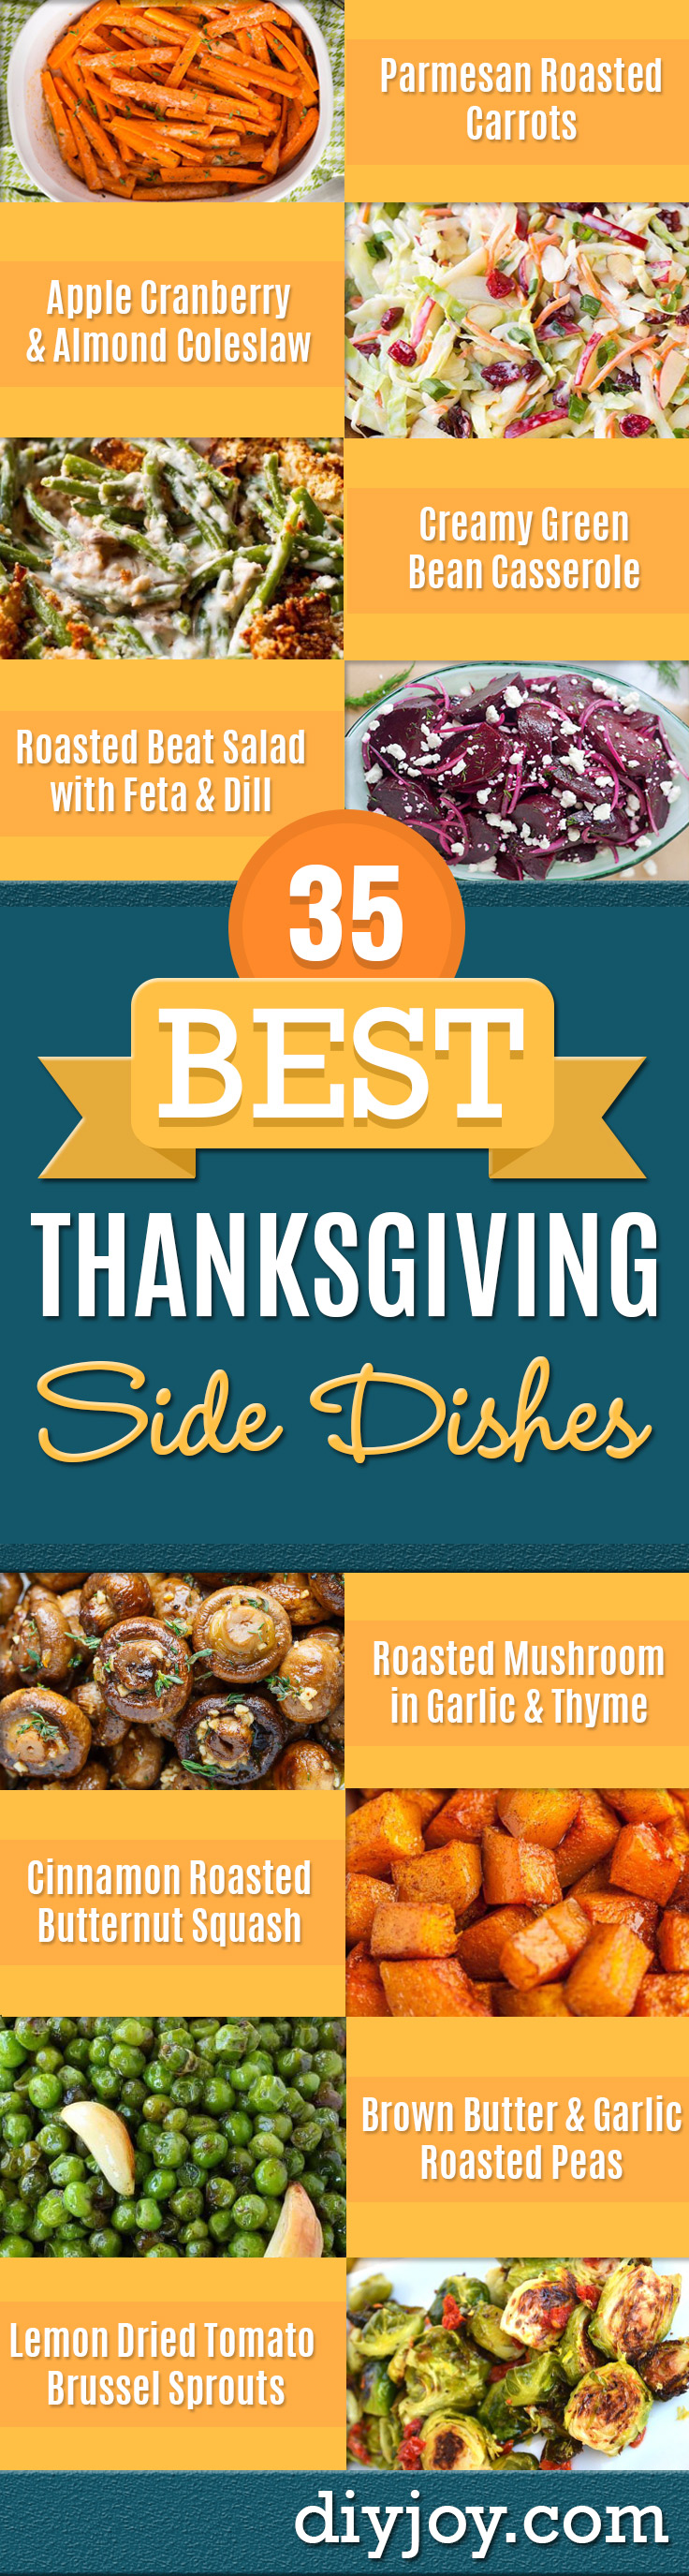 thanksgiving side dish recipes - Easy Make Ahead and Crockpot Versions of the Best Thanksgiving Recipes - Southern Vegetable Casseroles, Traditional Sides Like Corn, Stuffing, Potatoes, Spinach, Sweet Potatoes, Glazed Carrots - Healthy and Lowfat Side Dish Recipes #thanksgiving